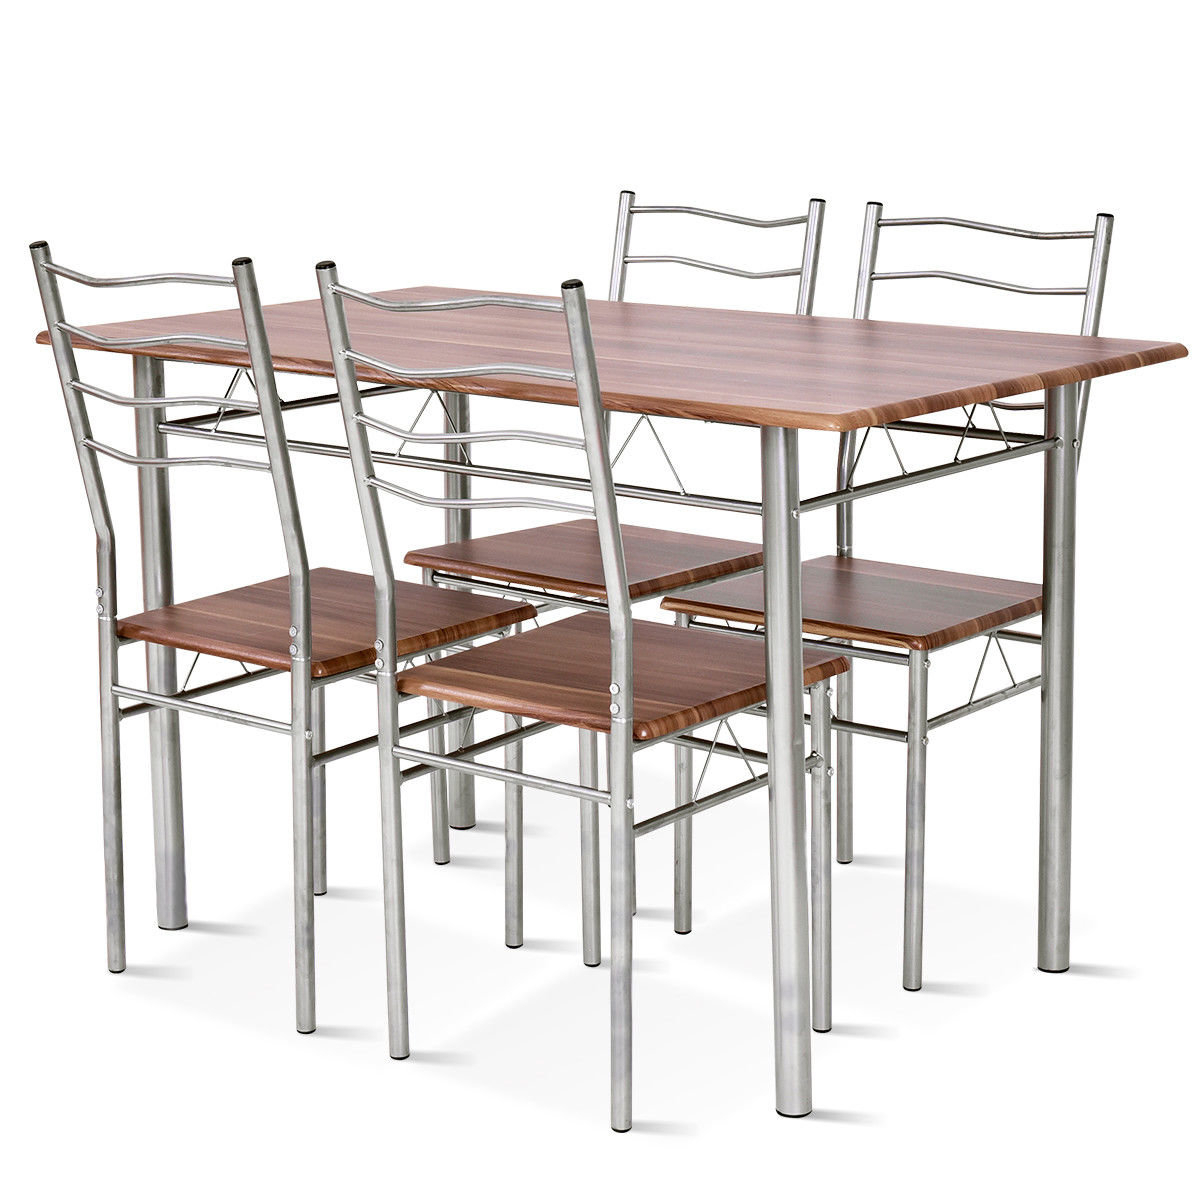 Inspiration about Wayfair With Regard To Most Popular Middleport 5 Piece Dining Sets (#11 of 20)